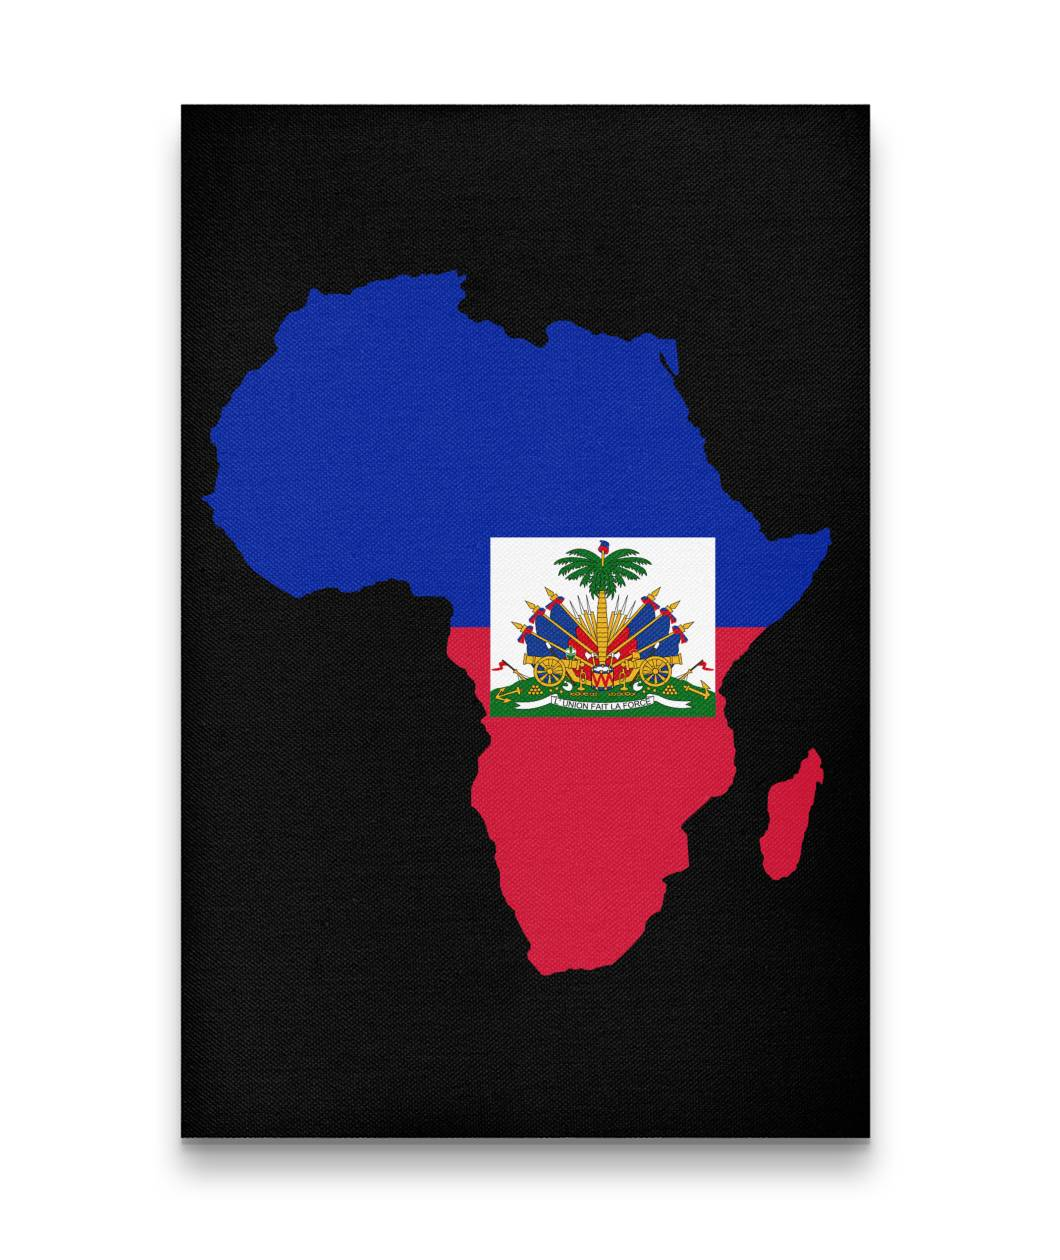 CARIBBEAN CONTINENT HAITI CANVAS ART - Rice & Tees